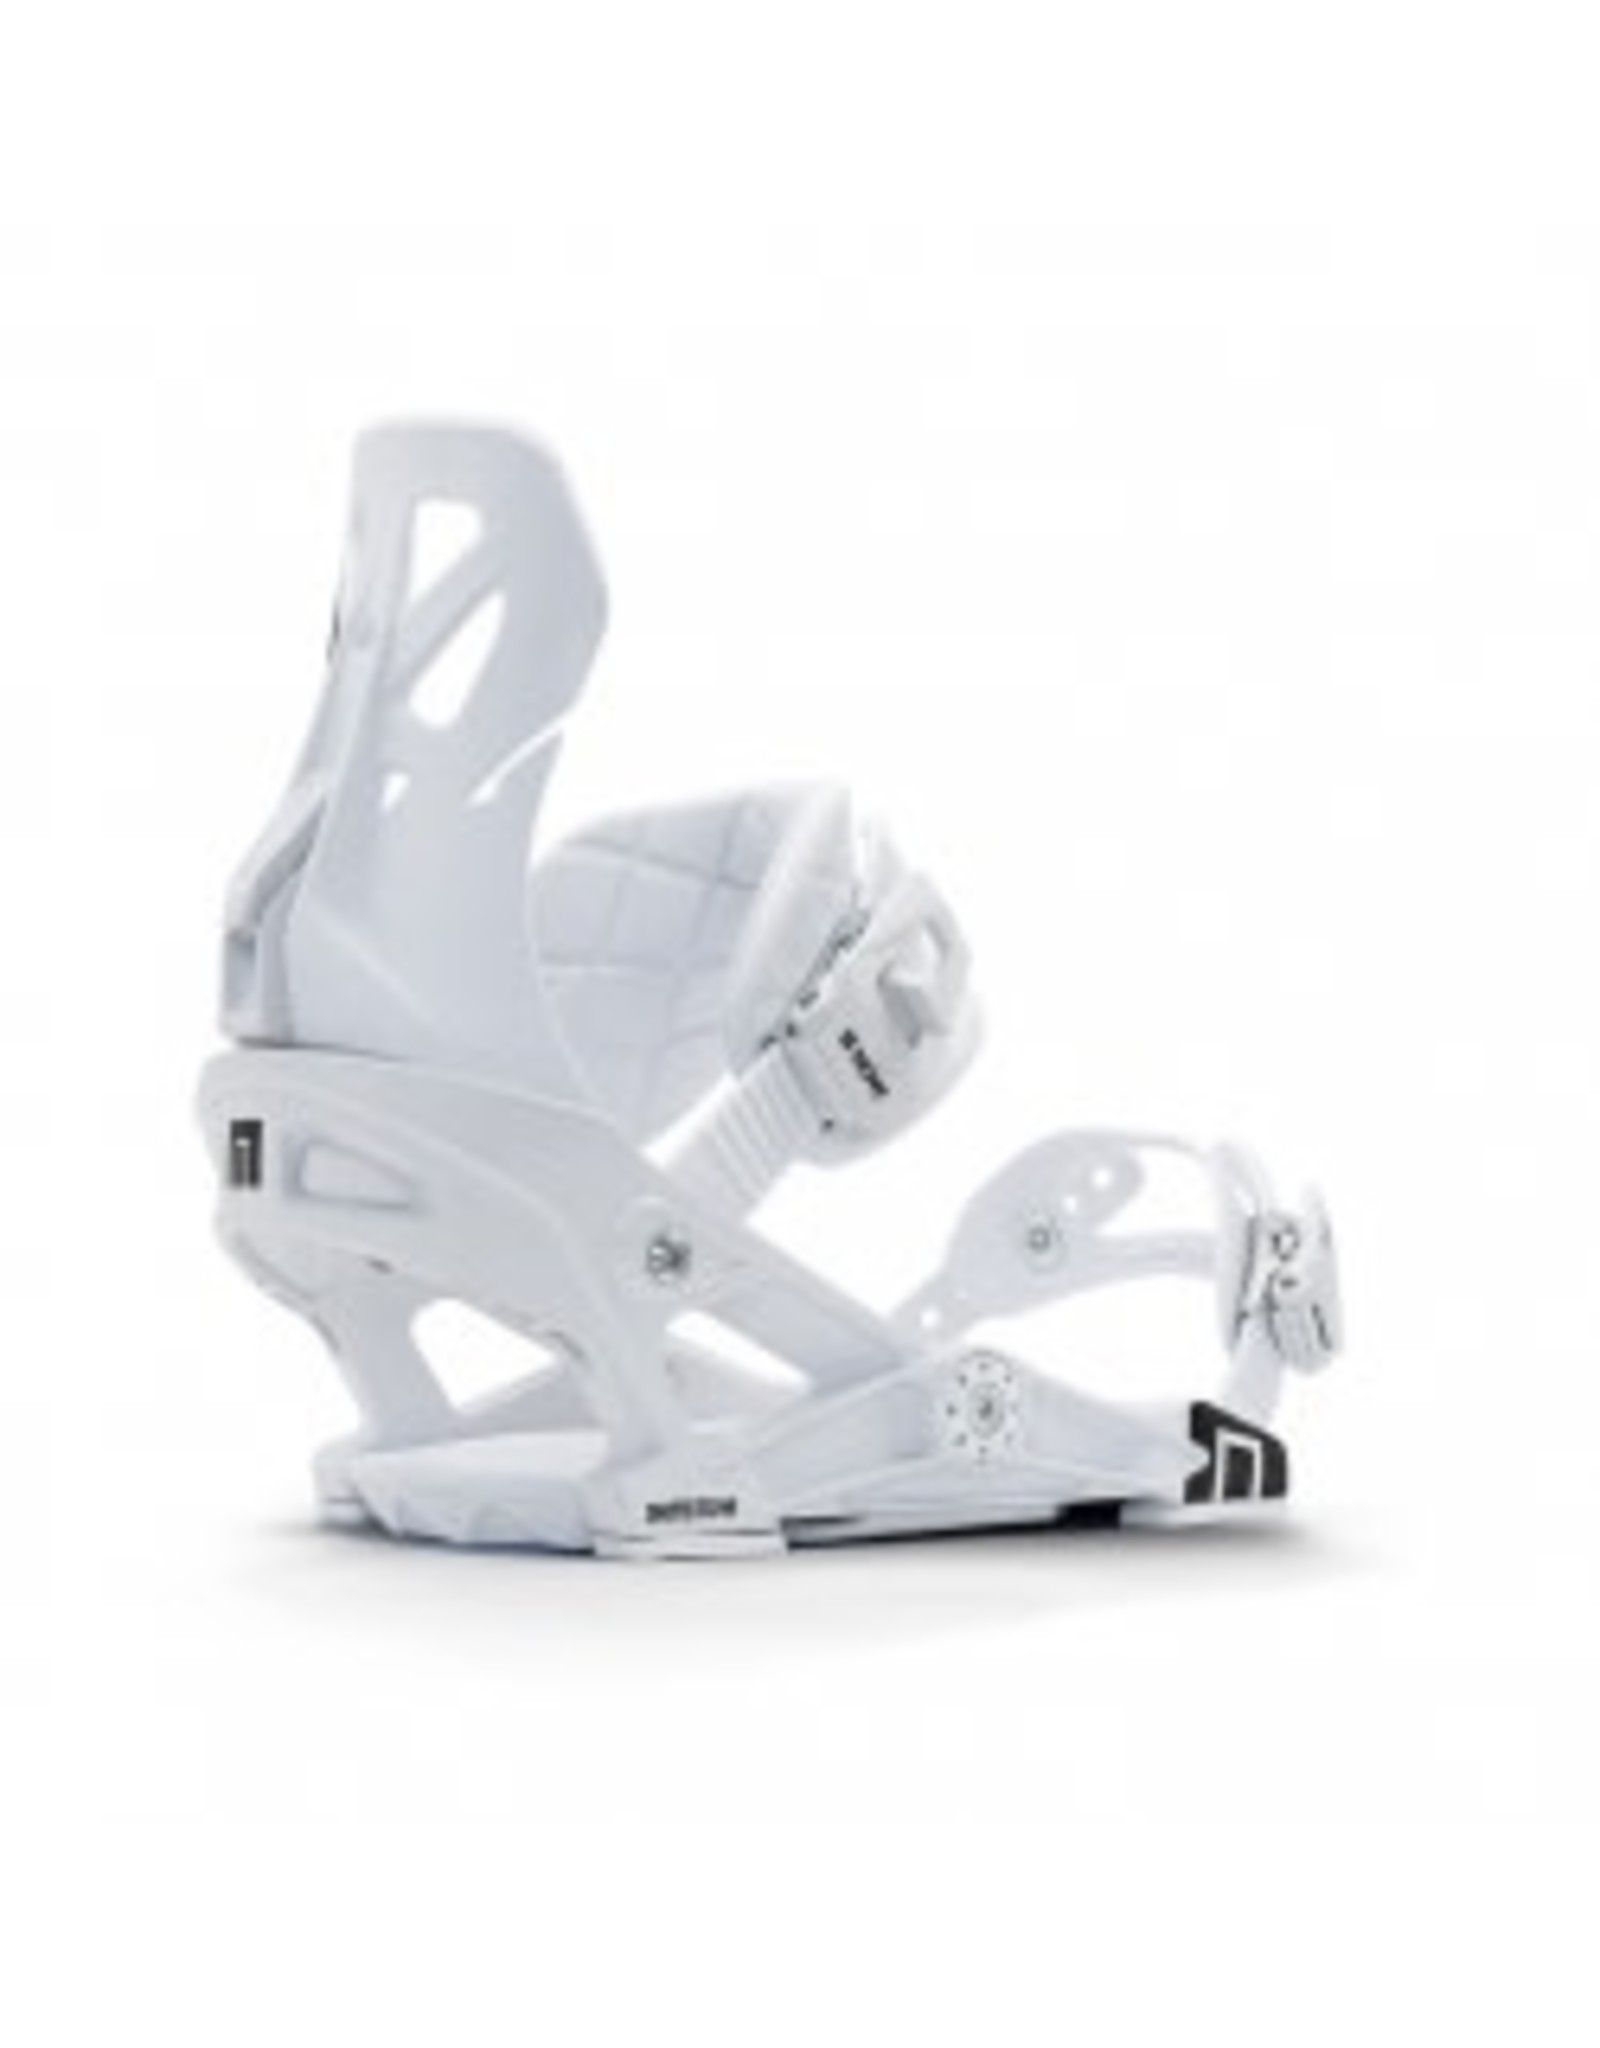 Now Now - Fixation homme pro-line white